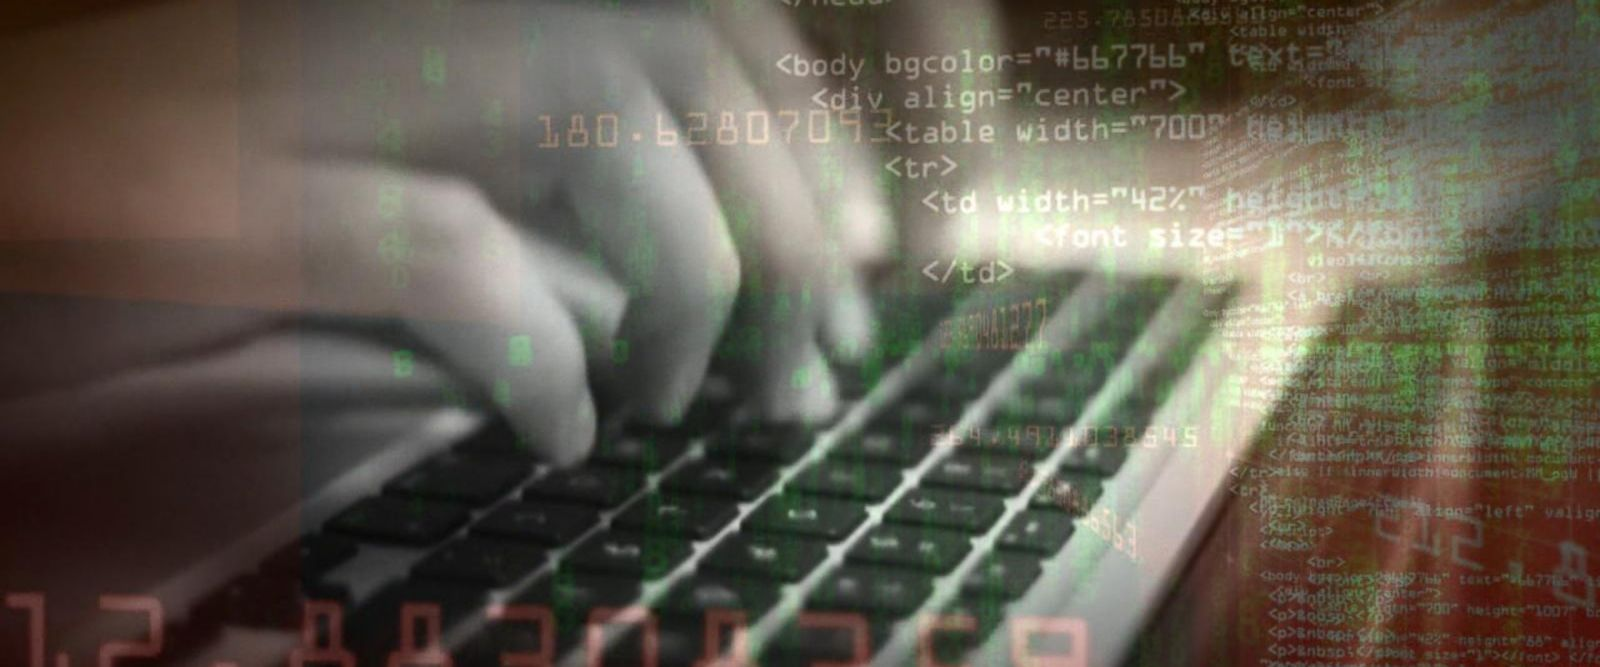 VIDEO: 'FruitFly' infecting Mac computers